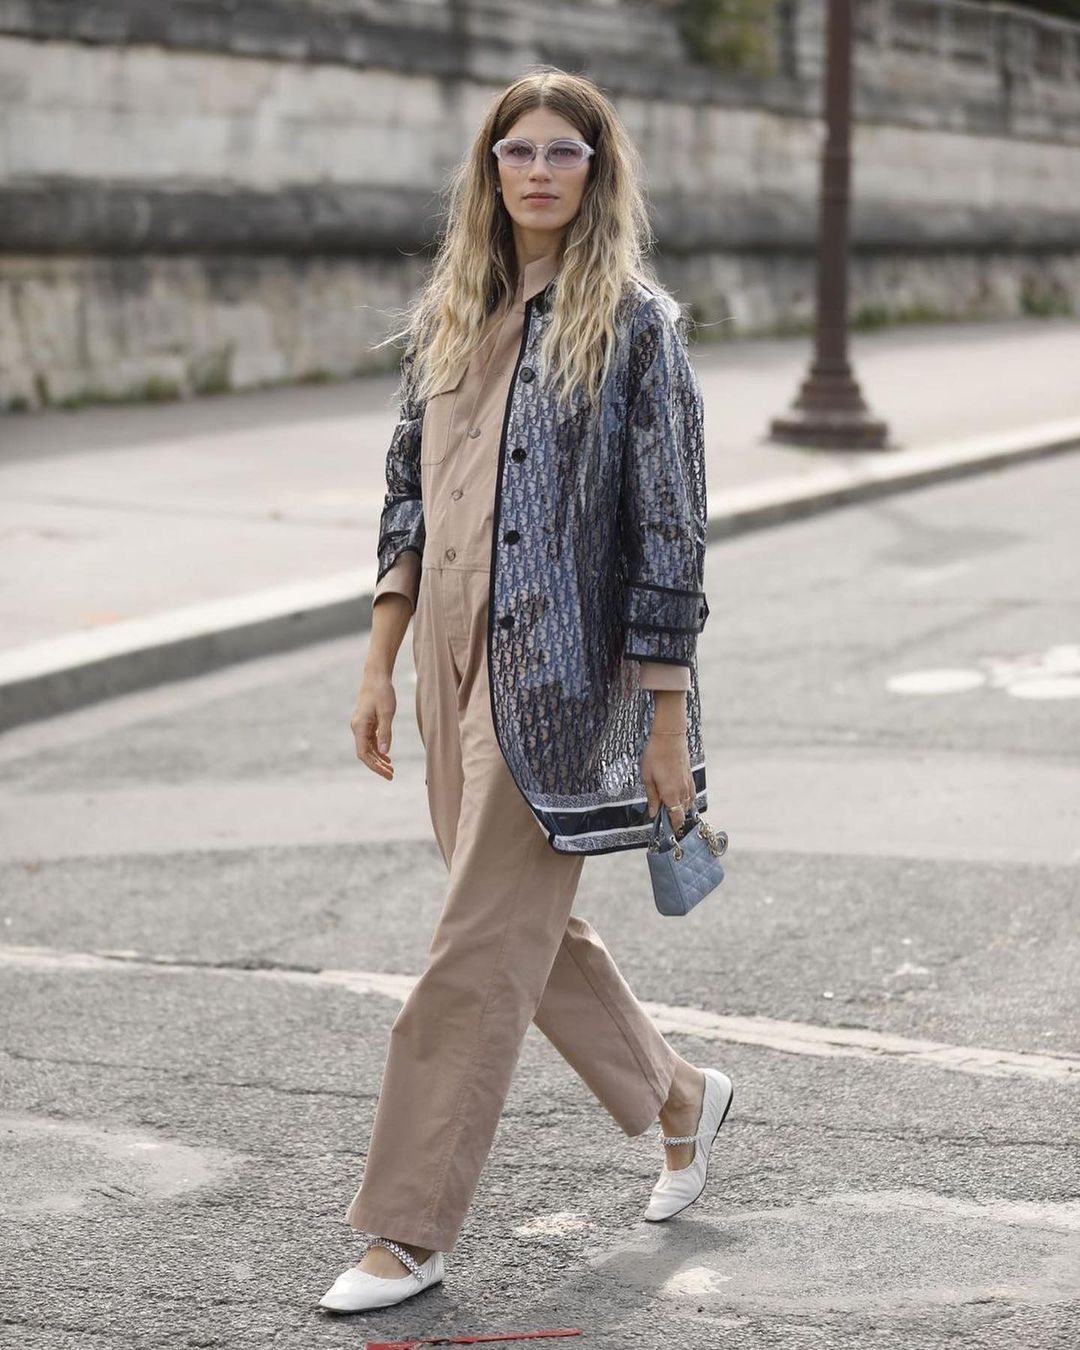 veronika-heilbrunner-dior-oblique-trench-coat-spring-2022-front-row-outfit